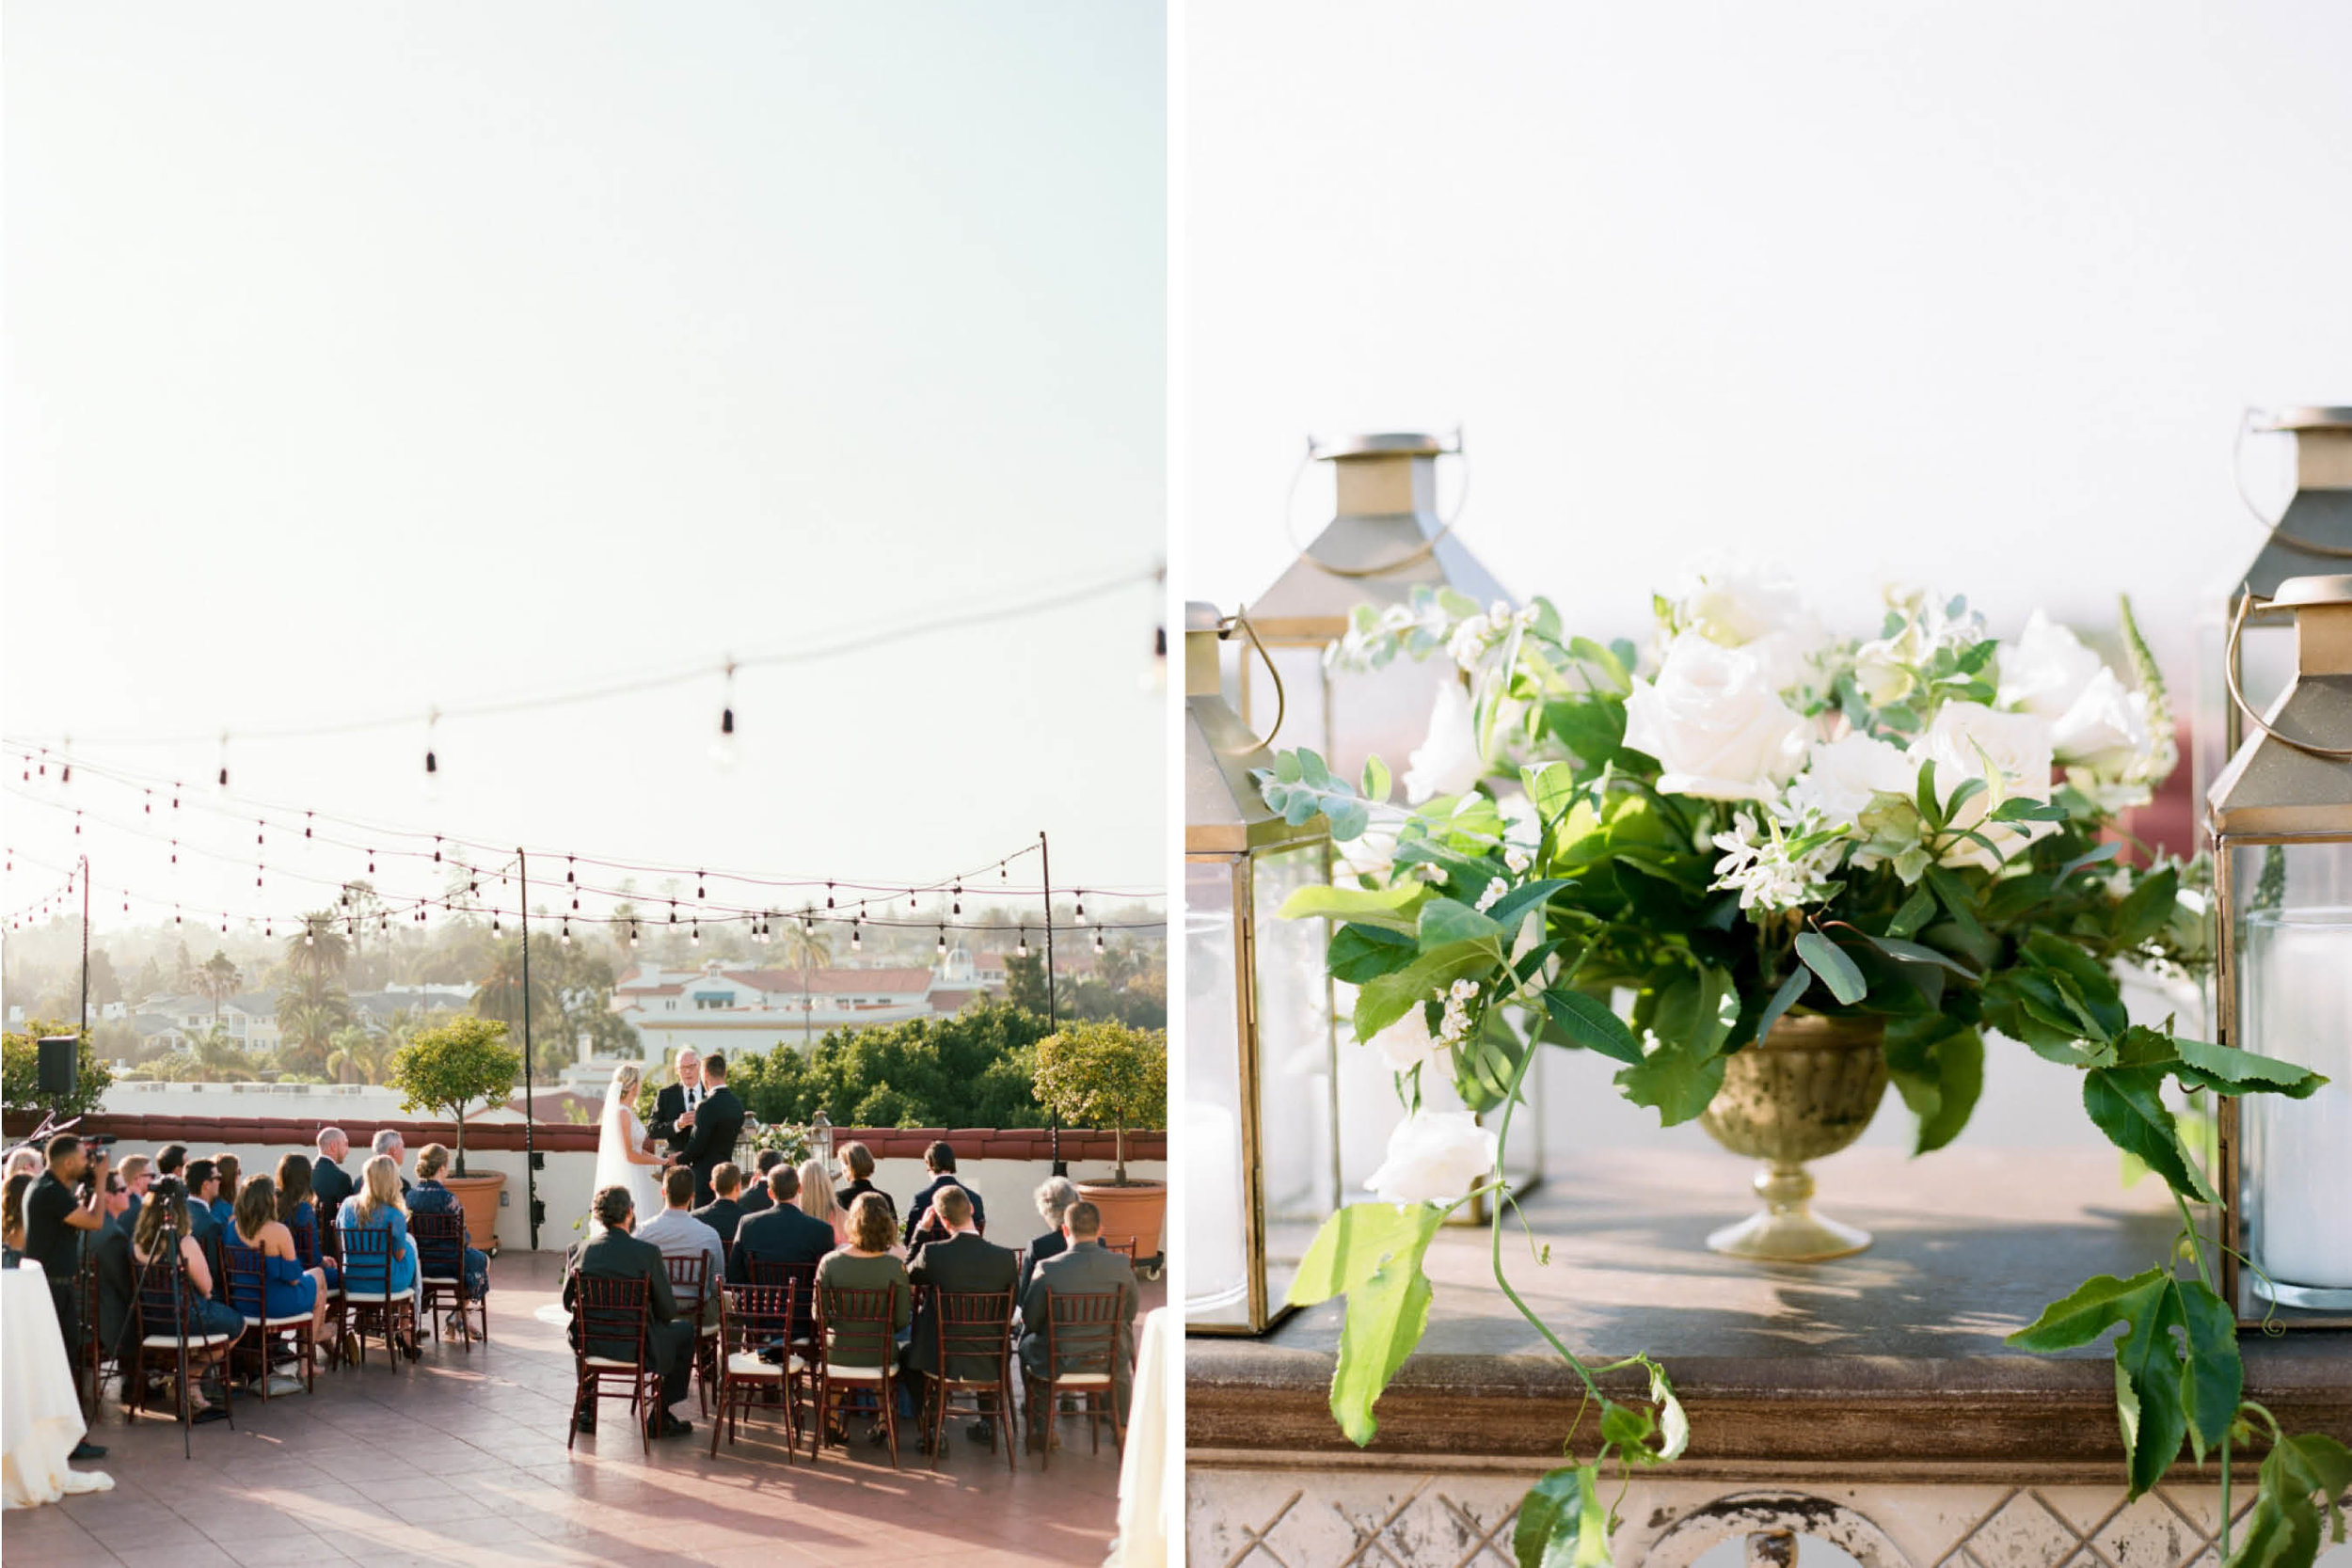 alegria-by-design-wedding-planner-planning-event-design-coordinator-day-of-canary-hotel-rooftop-beach-view-downtown-santa-barbara (16).jpg